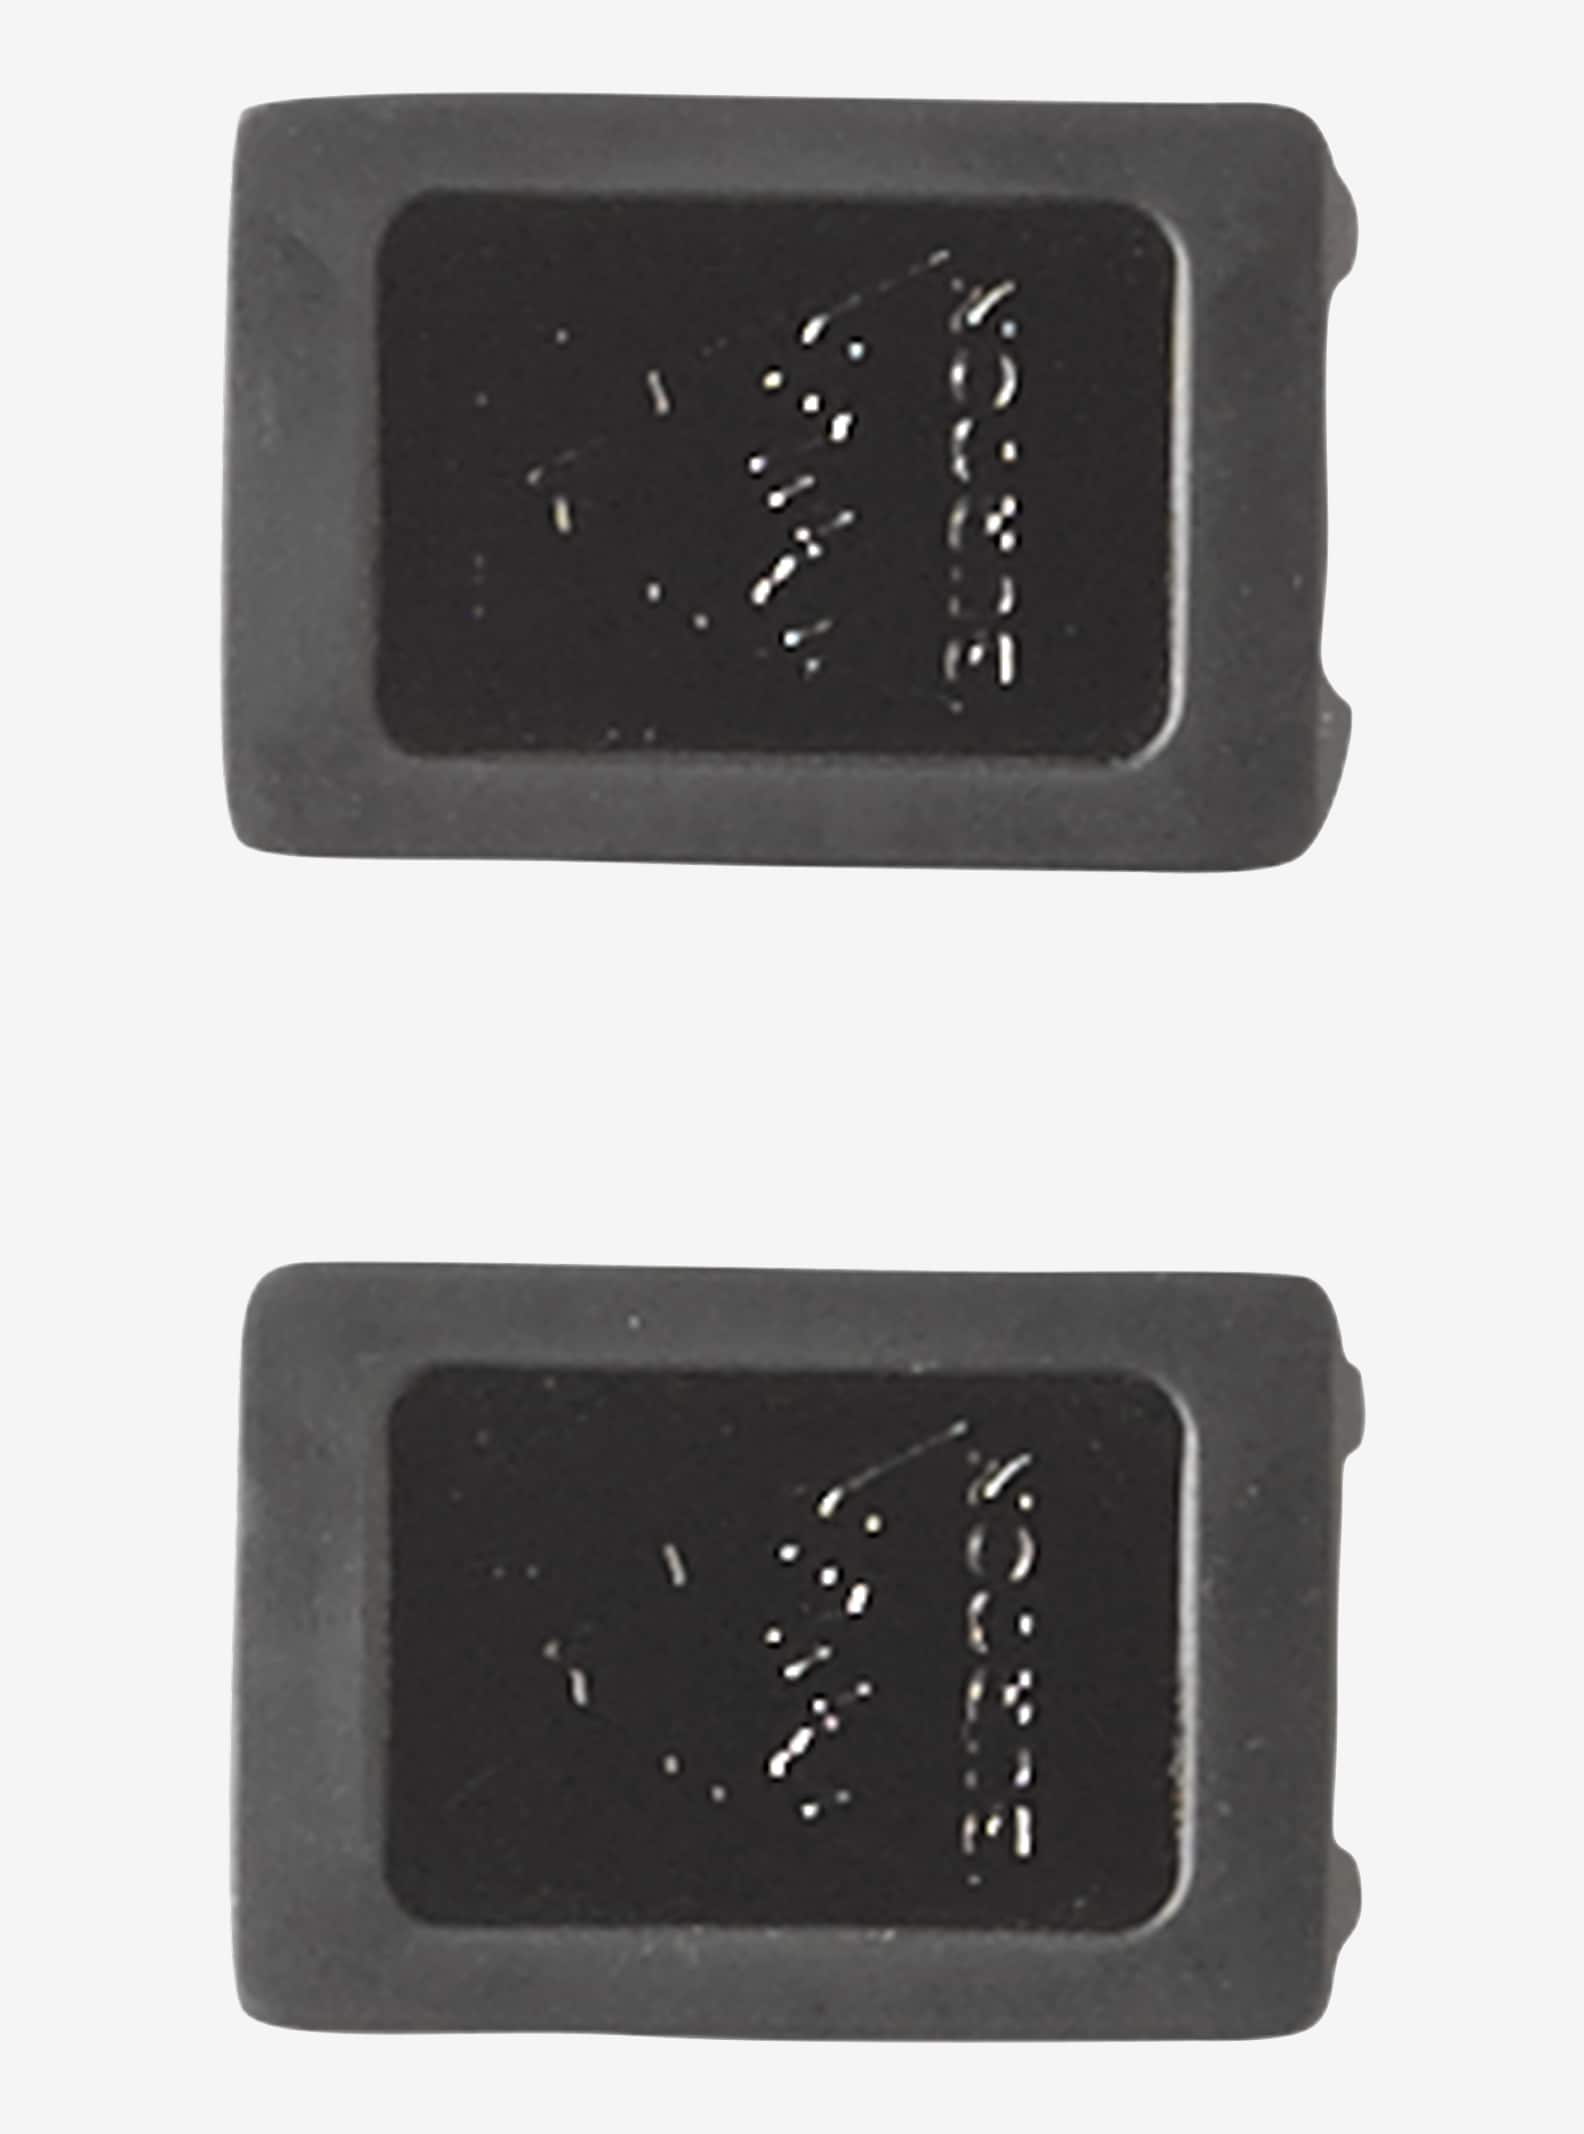 Burton Channel Plugs shown in Mountain Logo